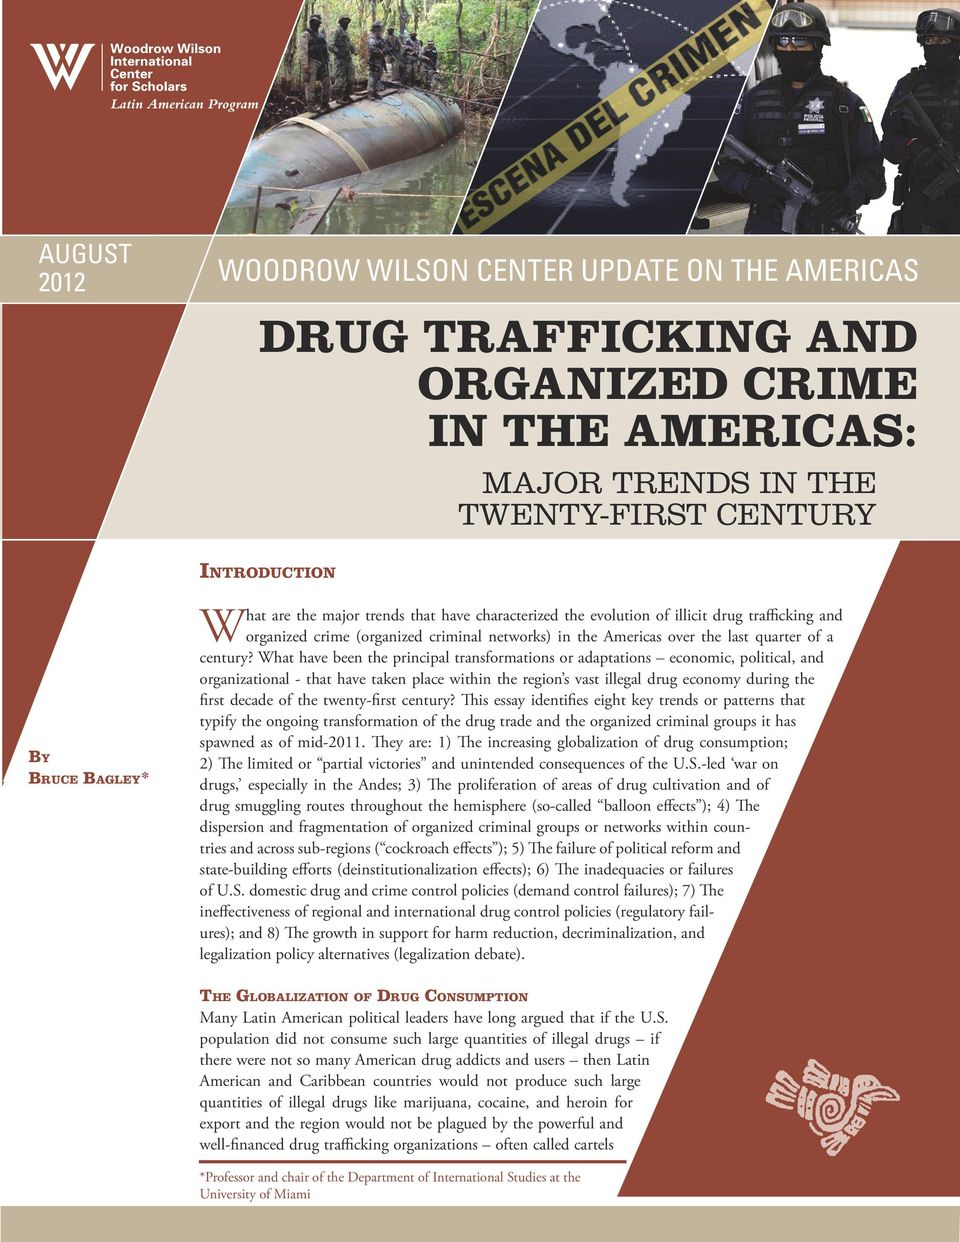 What have been the principal transformations or adaptations economic, political, and organizational - that have taken place within the region s vast illegal drug economy during the first decade of